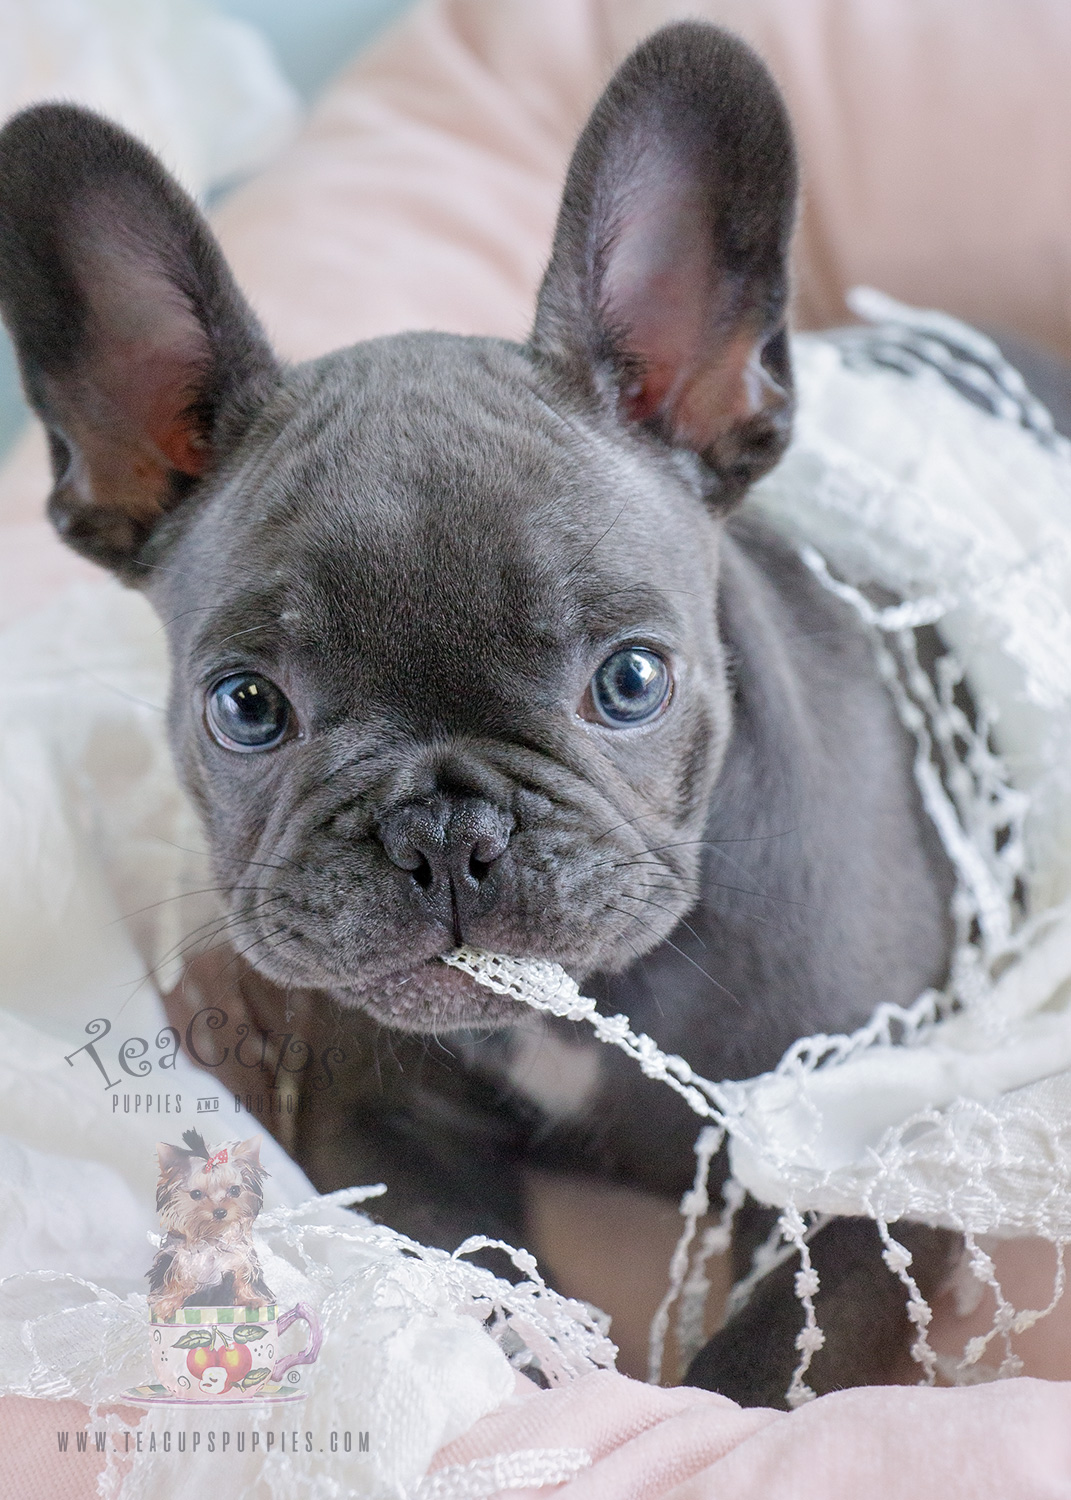 Female Blue French Bulldog Puppy by Teacups Puppies